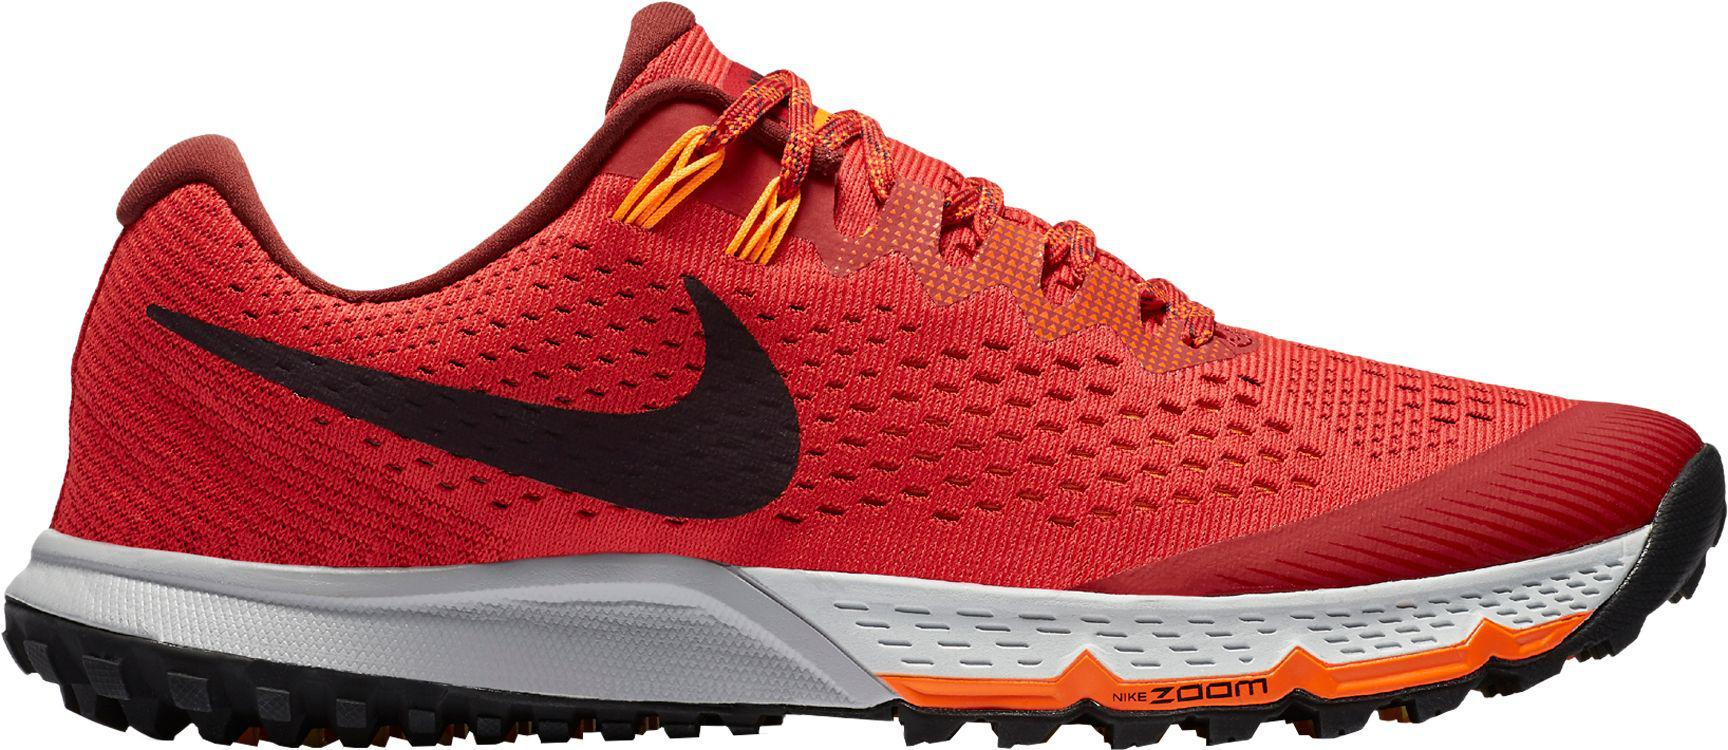 ff06e6216a28 Lyst - Nike Air Zoom Terra Kiger 4 Trail Running Shoes in Red for Men